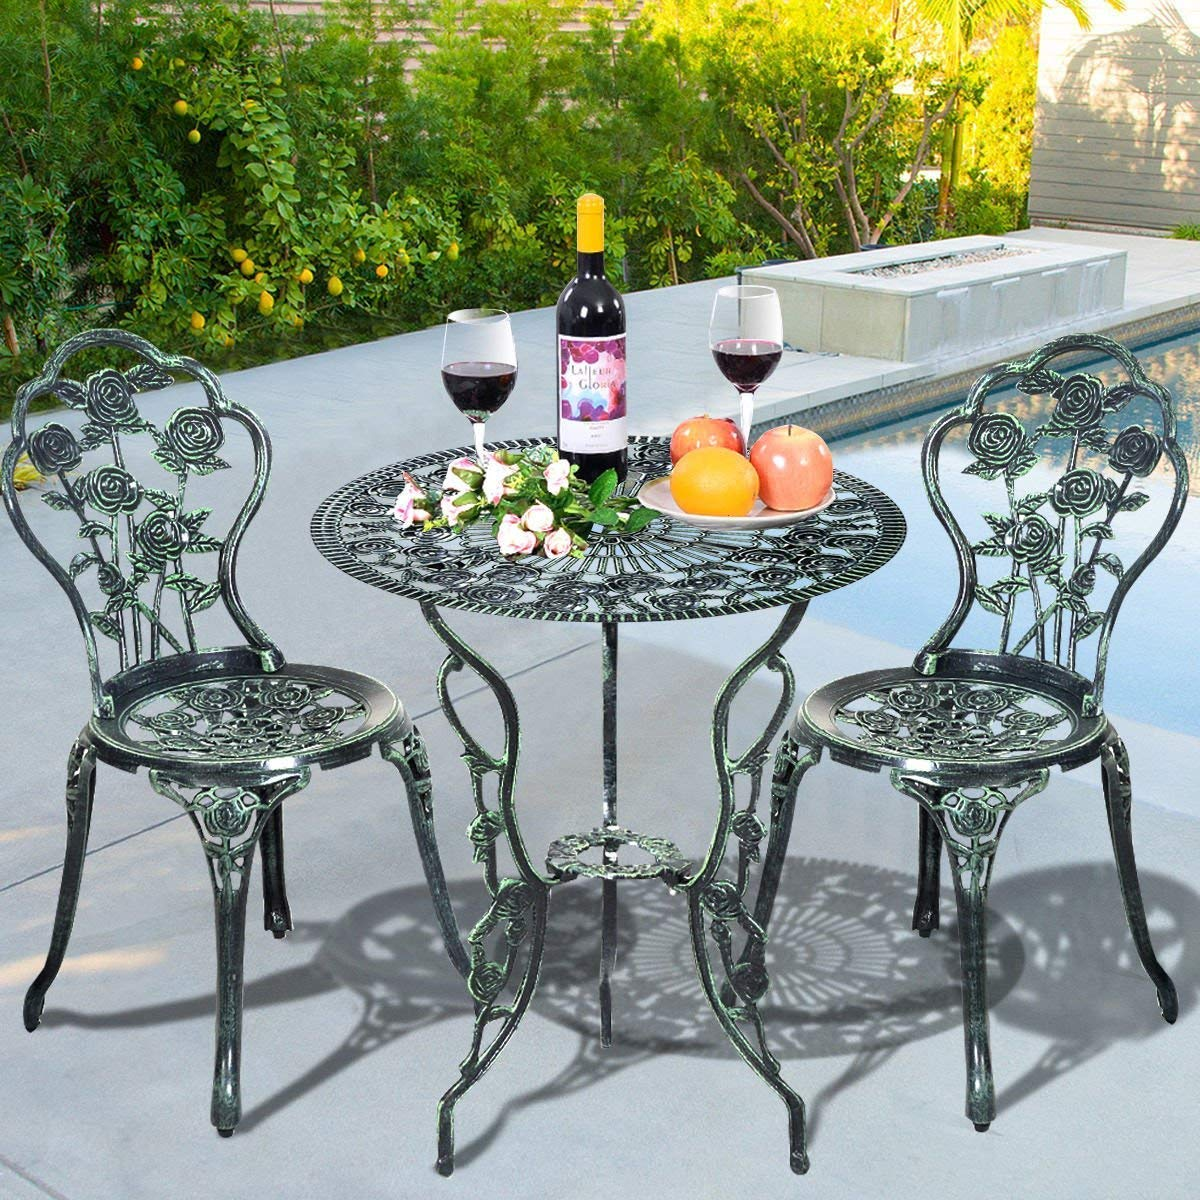 Amazing Giantex 3 Piece Bistro Set Cast Rose Design Antique Outdoor Patio Furniture Weather Resistant Garden Round Table And Chairs W Umbrella Hole Rose Download Free Architecture Designs Embacsunscenecom